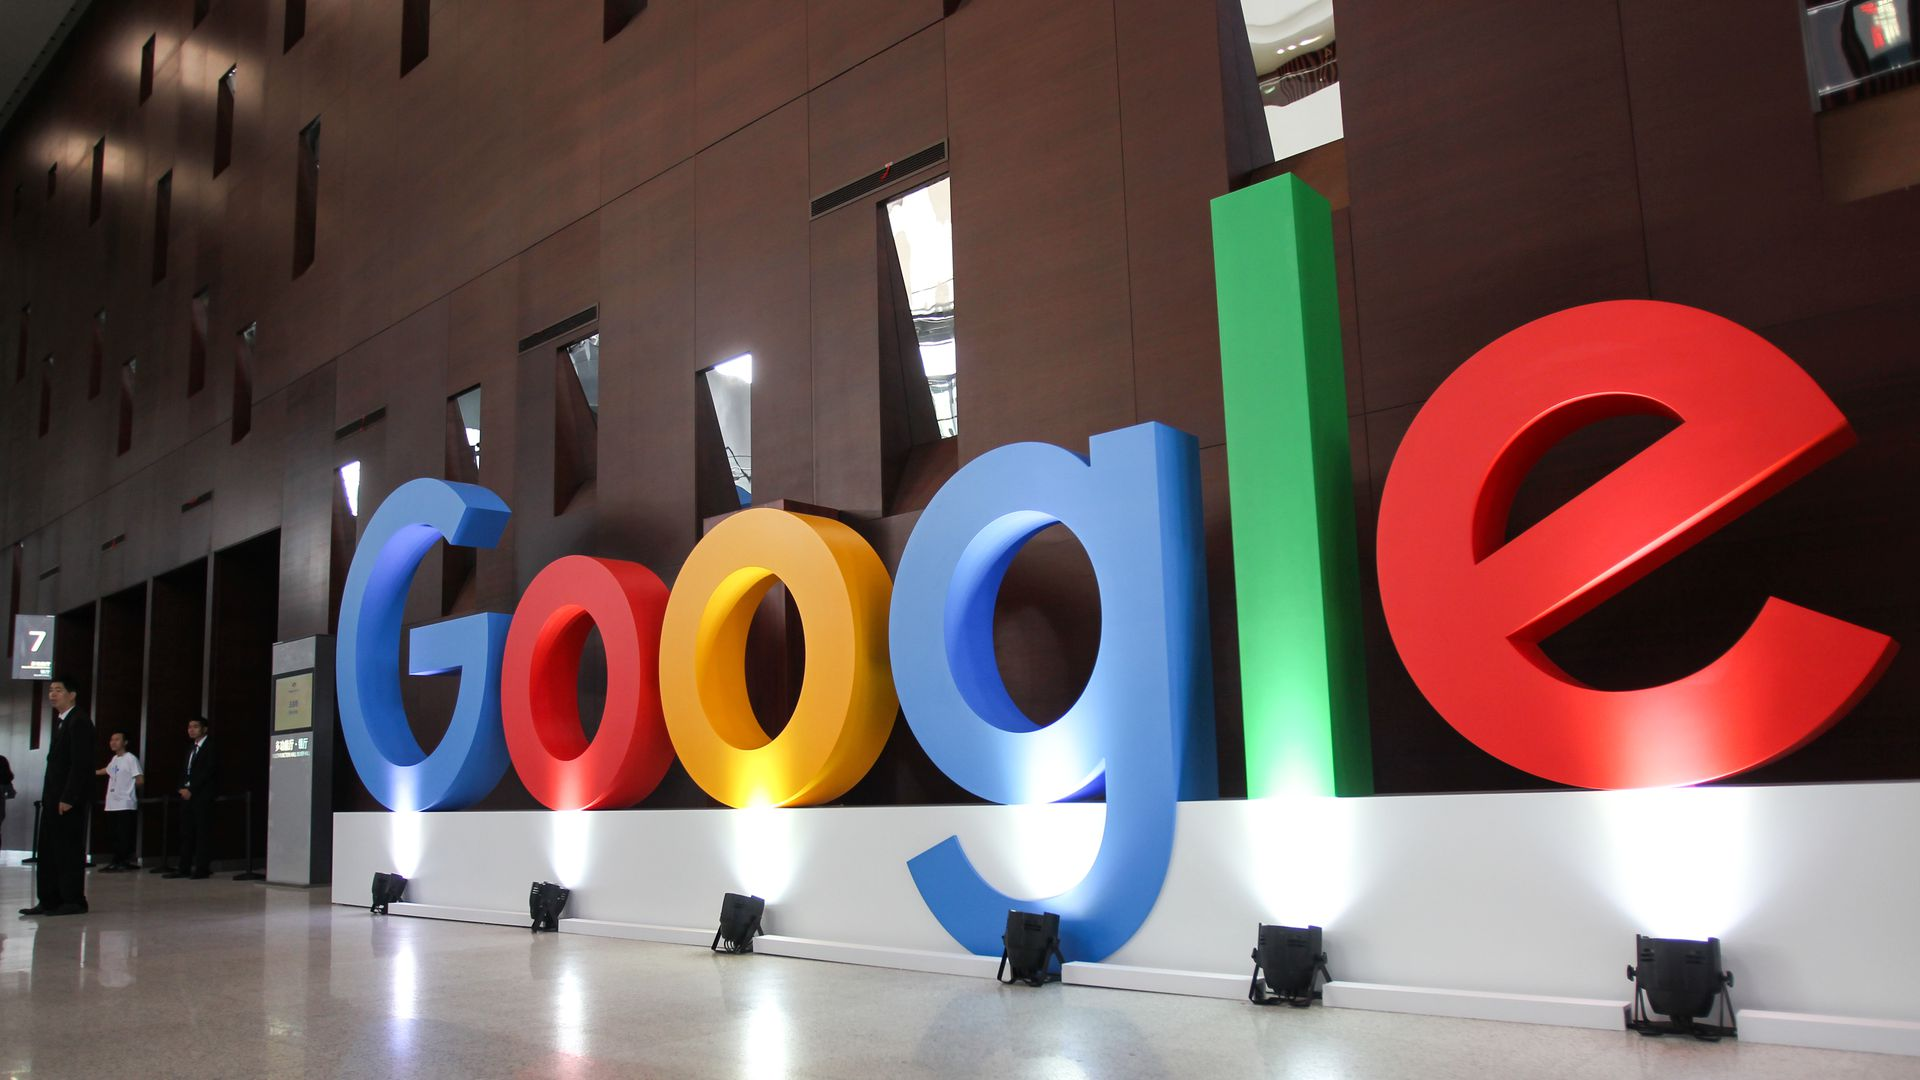 Google's multi-color logo with lights shining underneath it.